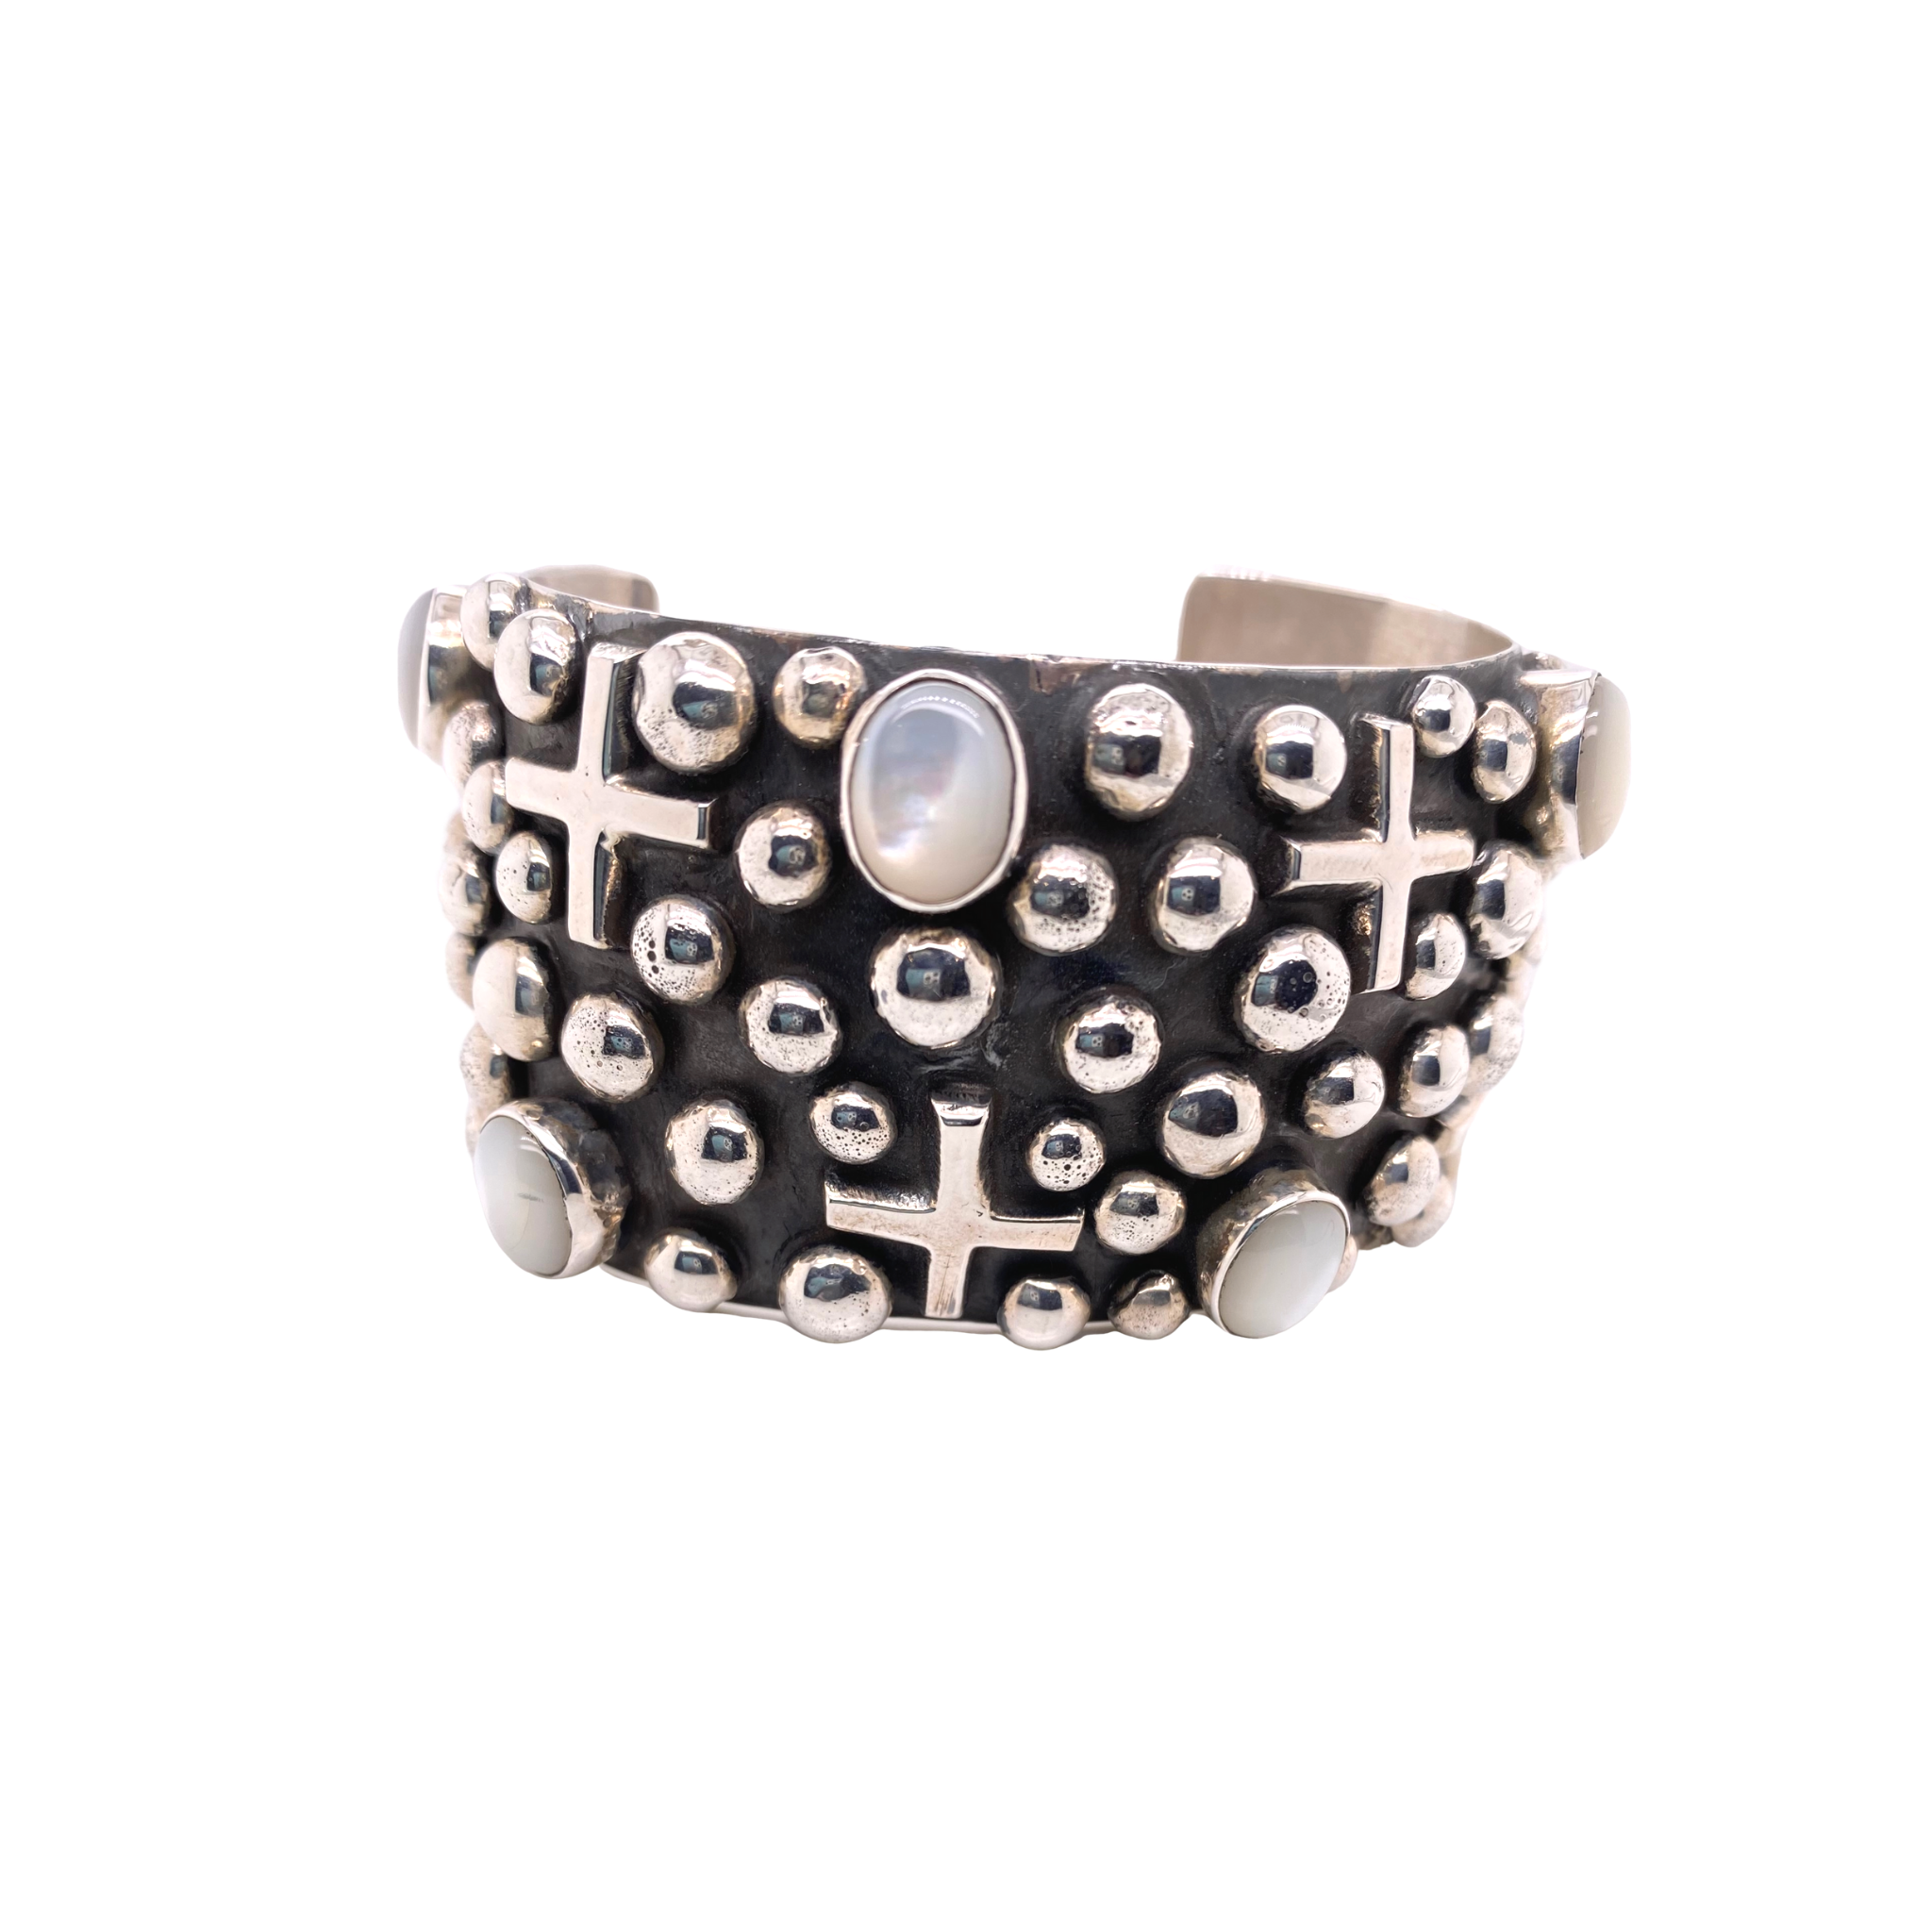 Wide Cross + Bead Mother of Pearl Cuff - Karlas Jewelry & Gifts